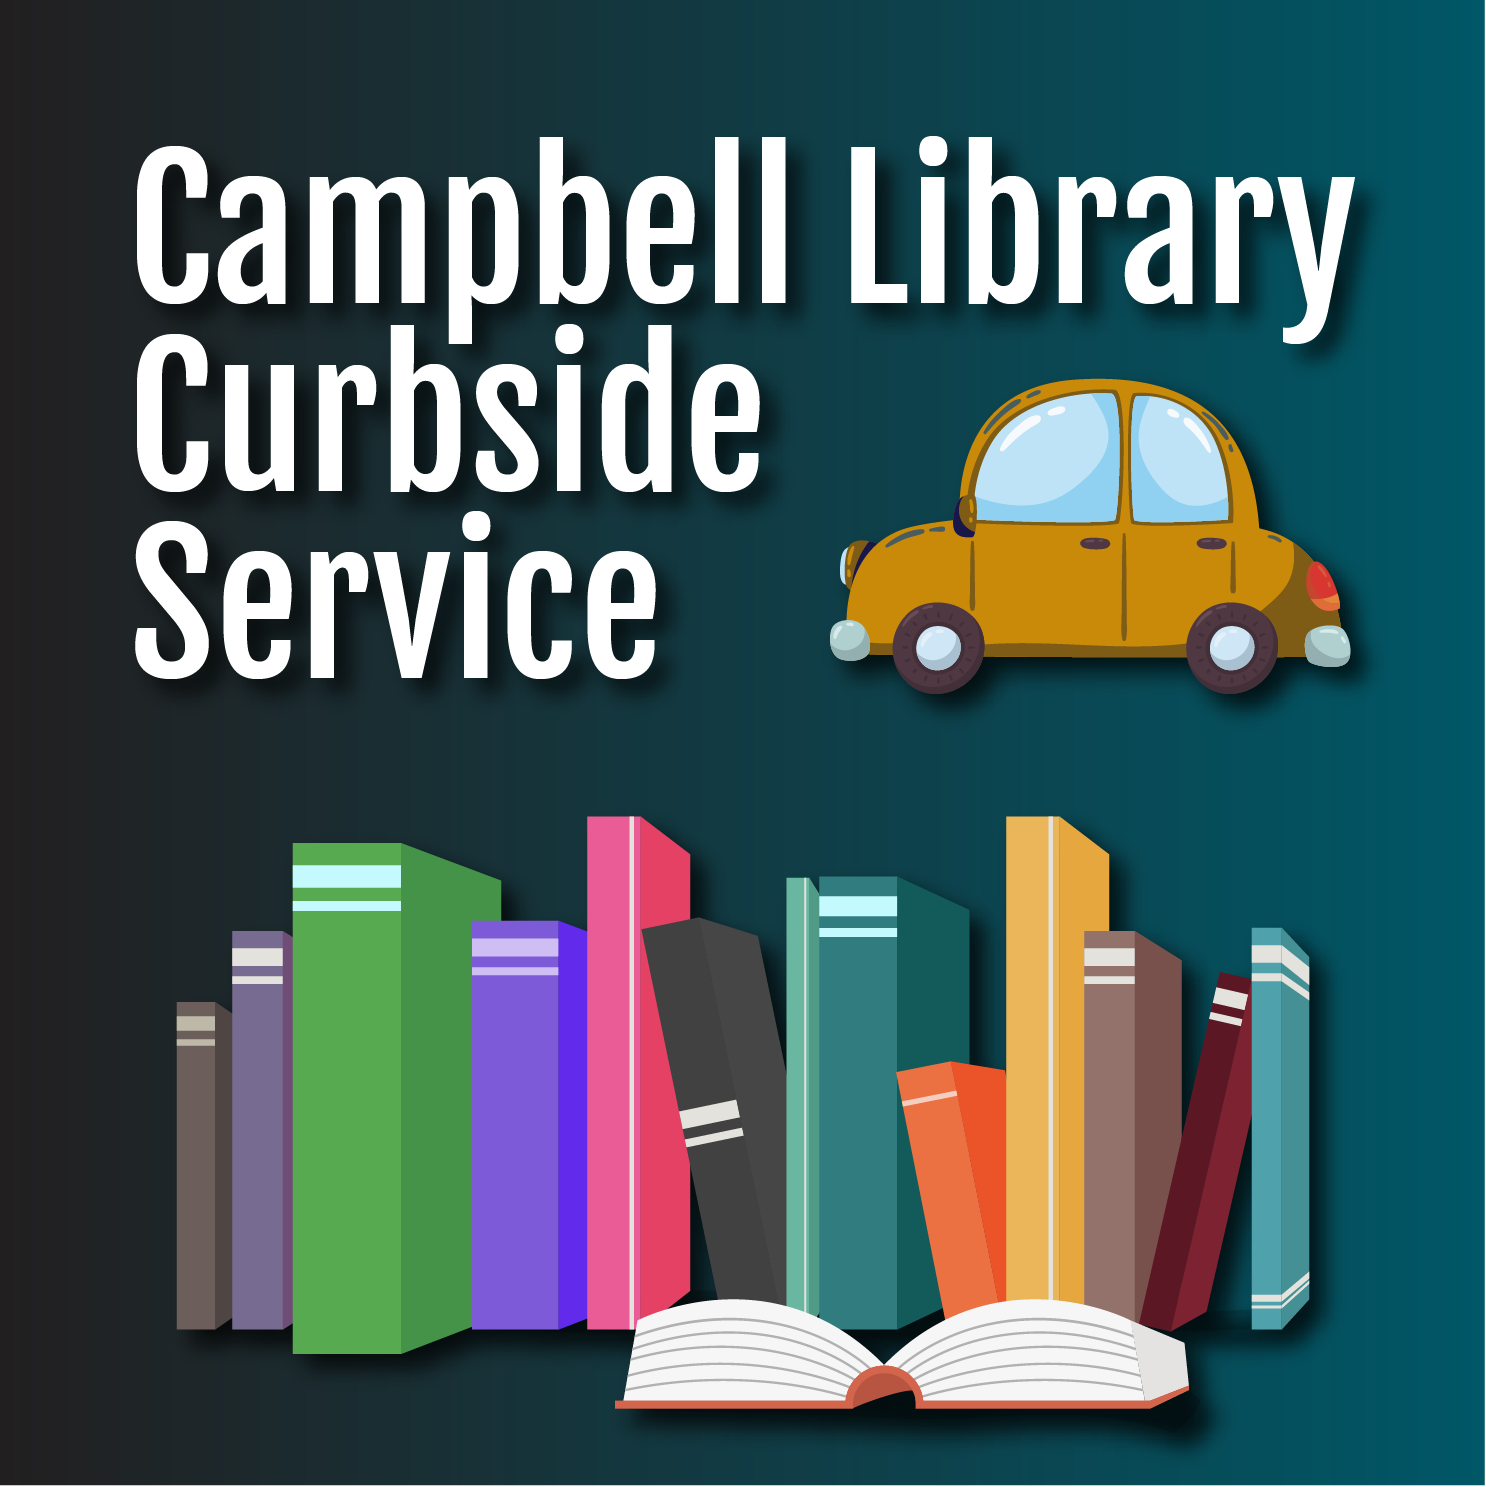 Campbell Library curbside service